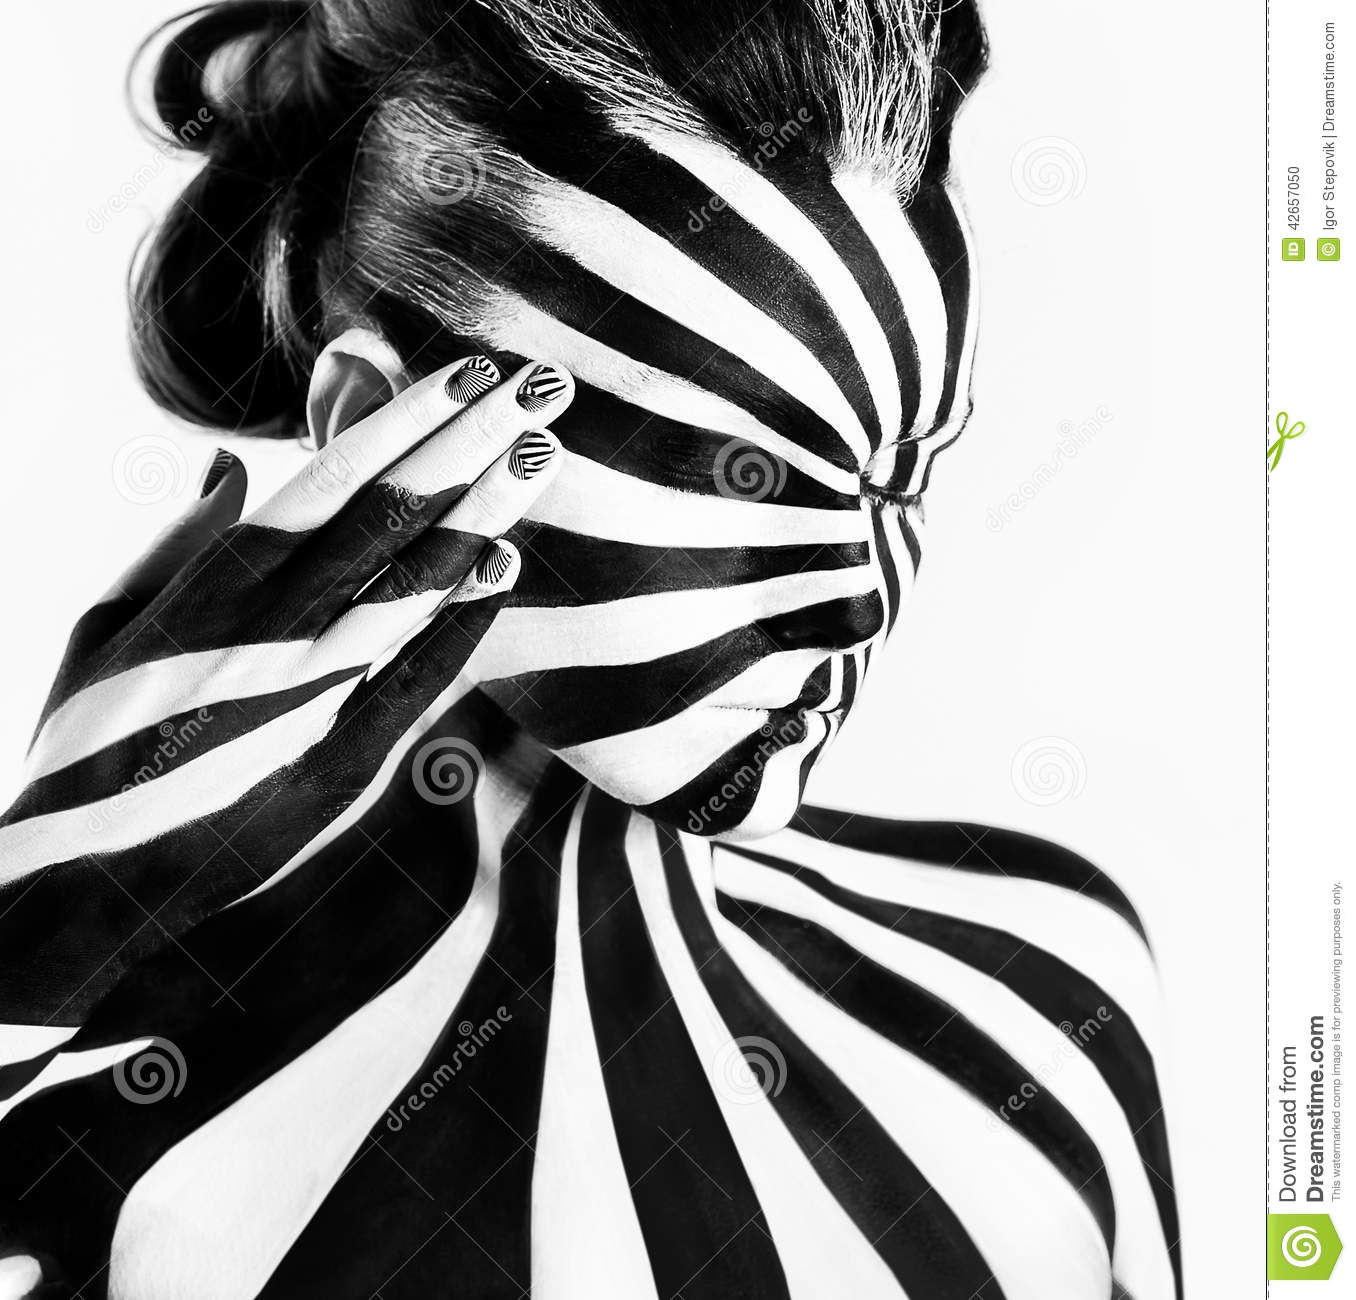 Spiral Bodyart On The Body Of A Young Girl Stock Photo Image Of Caucasian Bodyart 42657050